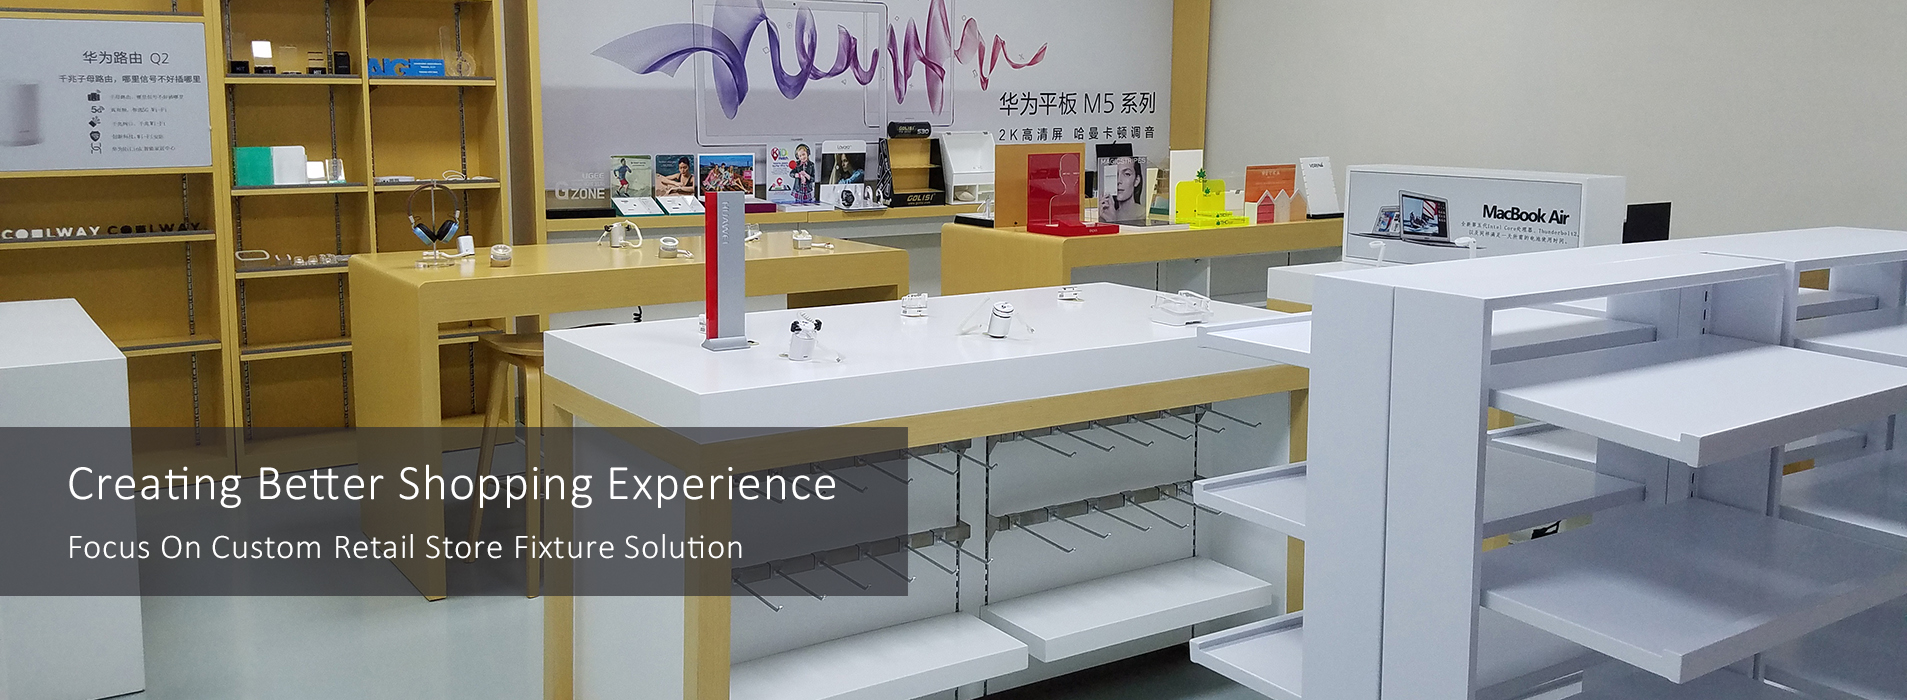 RECHI focus on custom retail store fixture solution for electronic store